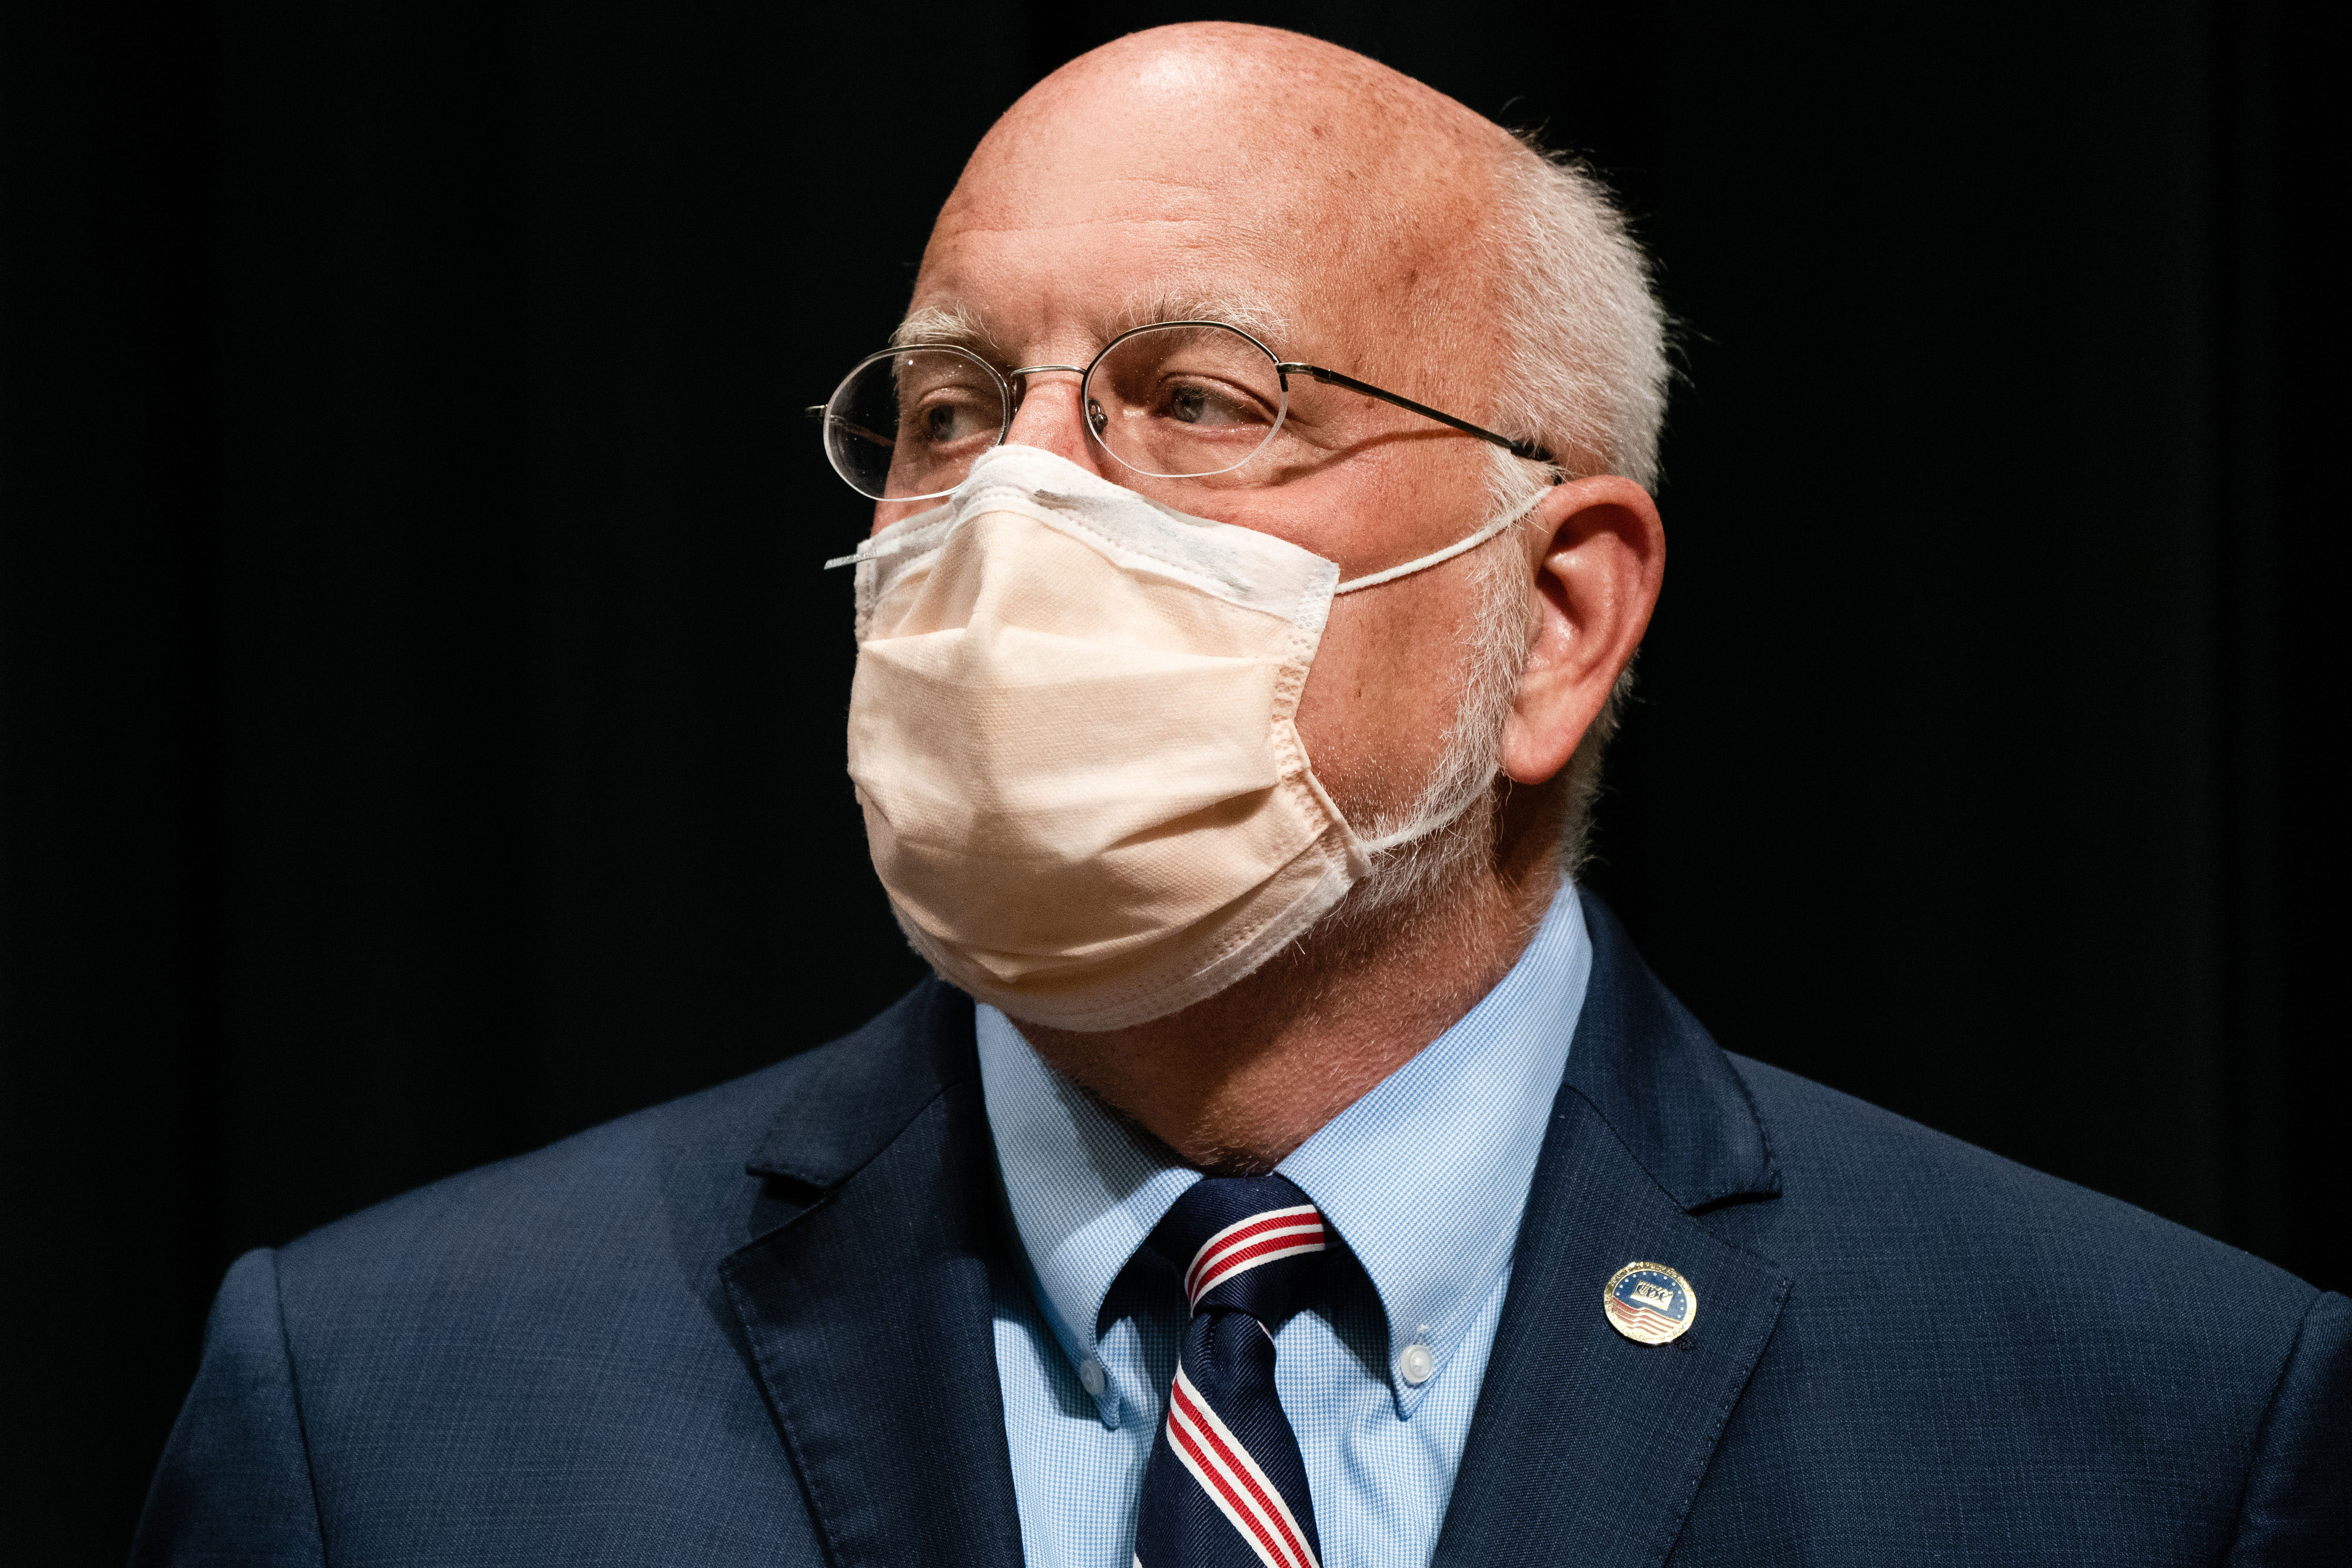 Dr. Robert Redfield, director of the US Centers for Disease Control and Prevention, attends a news conference in Atlanta on October 21.